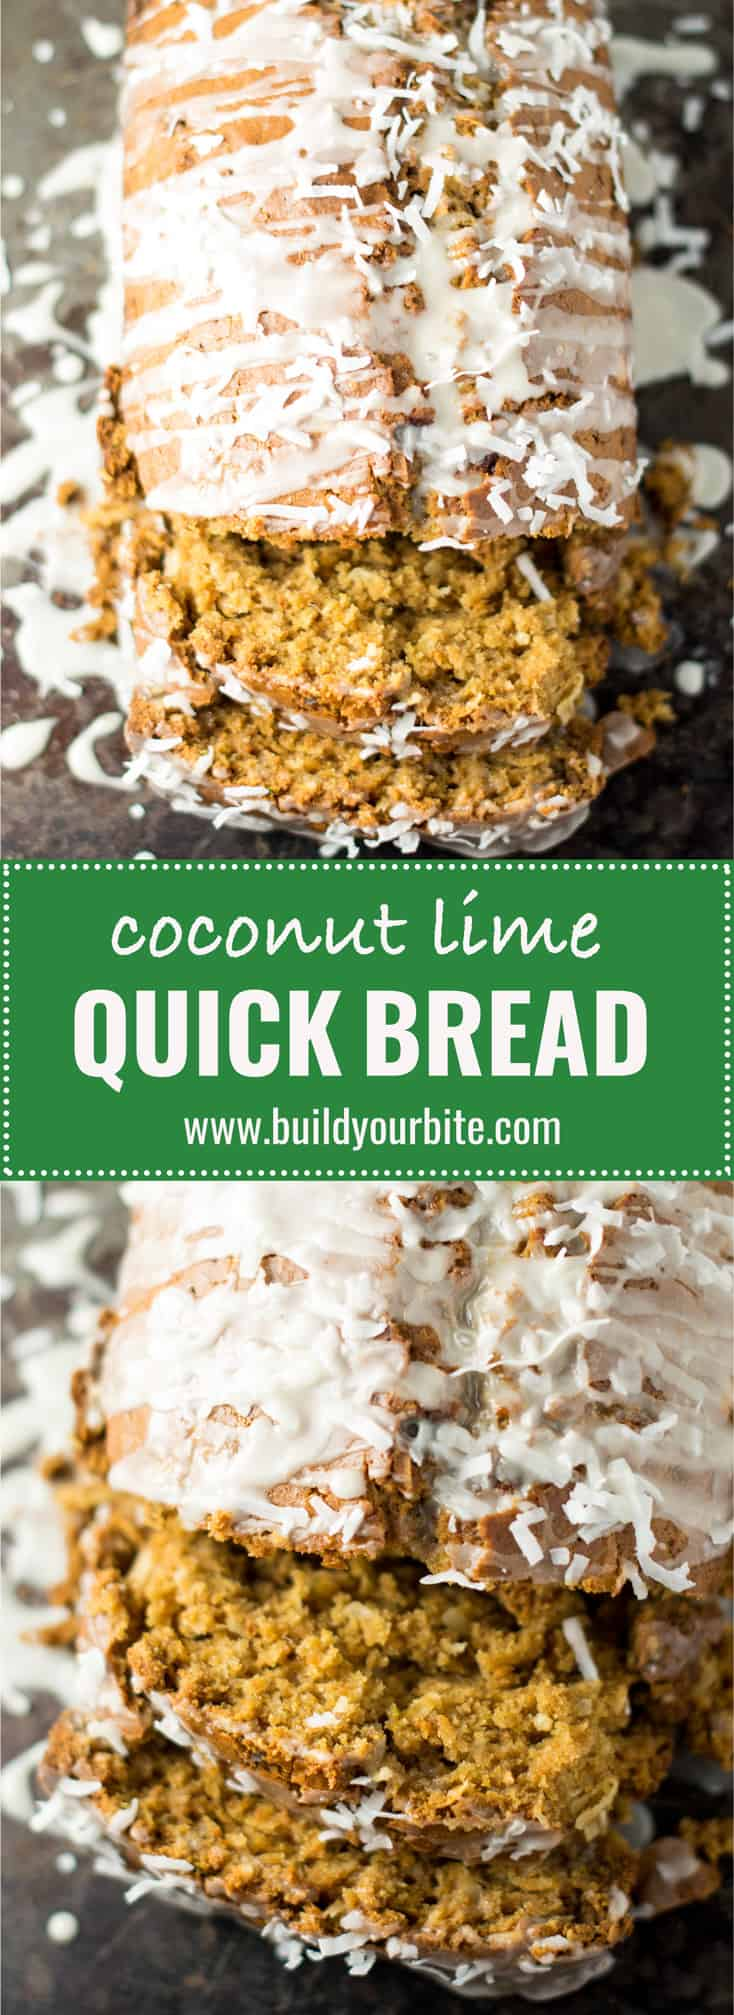 coconut lime bread with sweet lime glaze #desserts #coconutlime #coconutlimebread